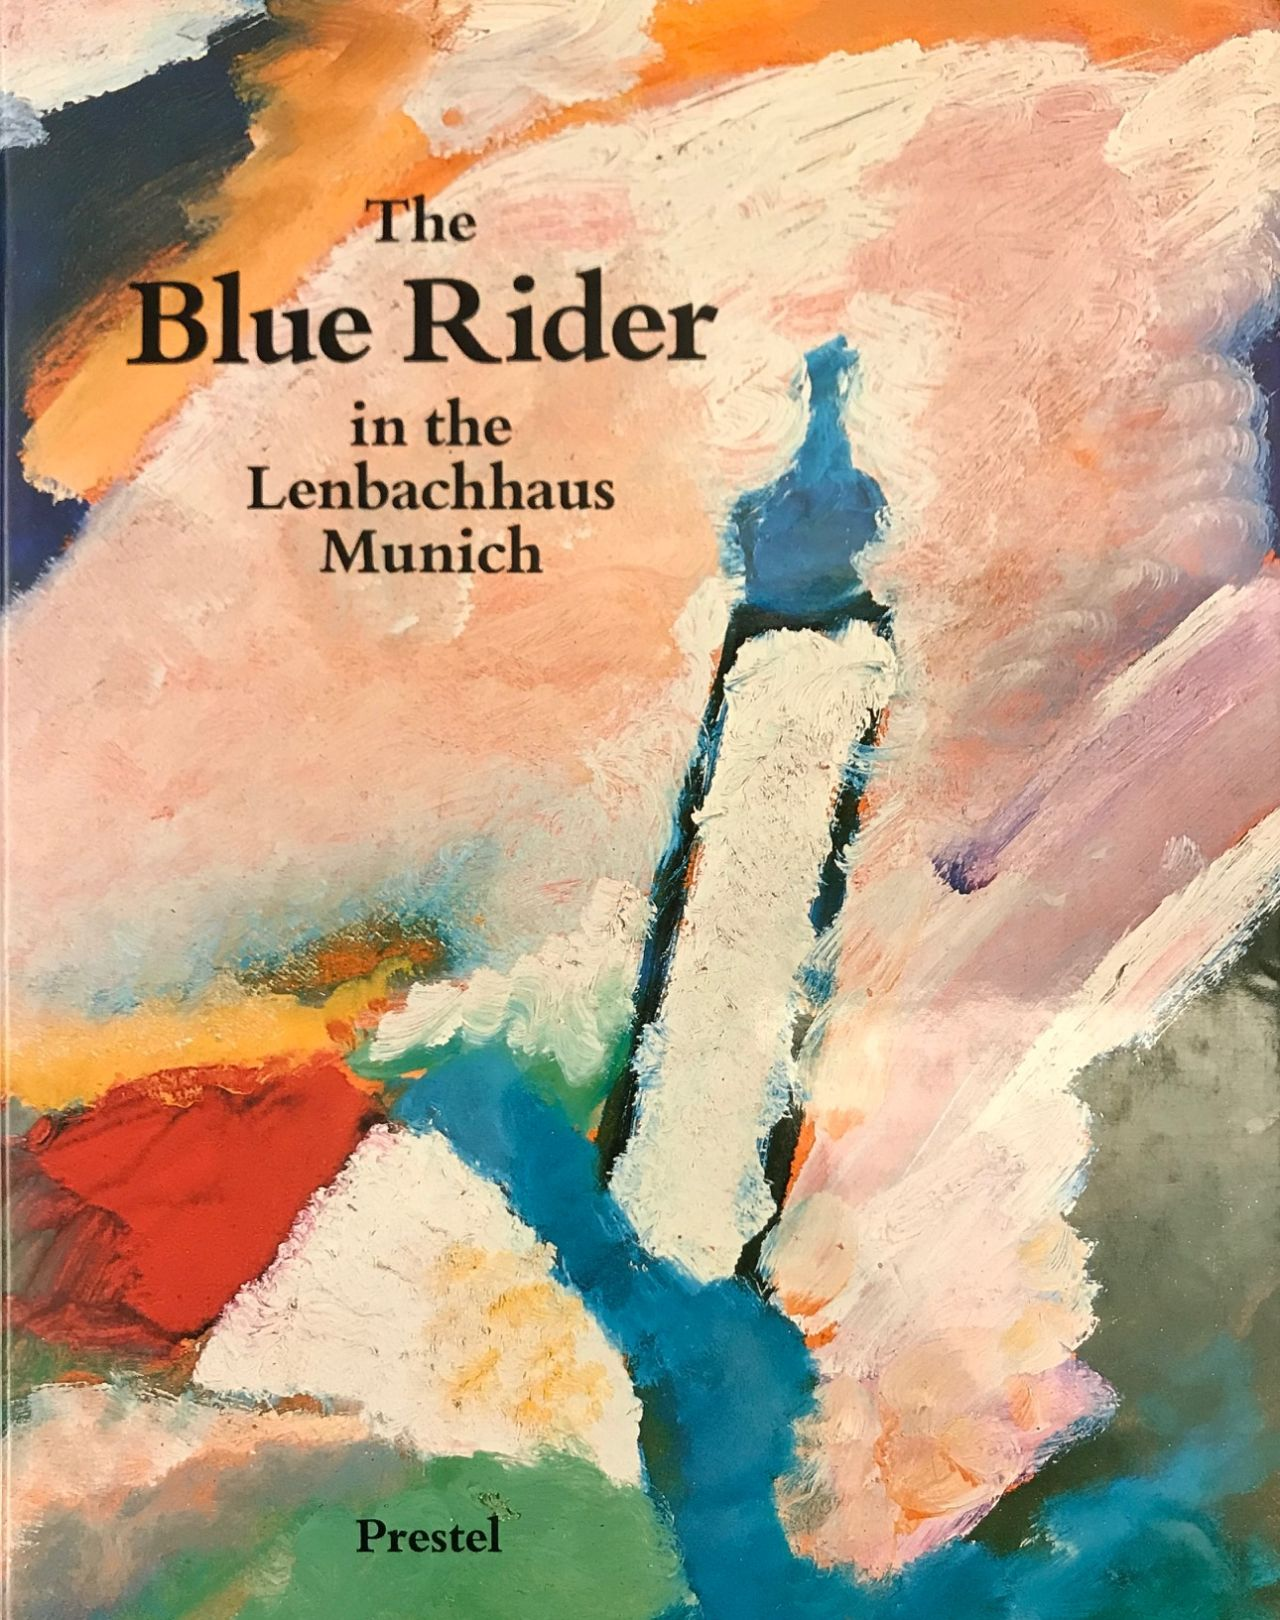 The Blue Rider in the Lenbachhaus, Munich IMG 1057